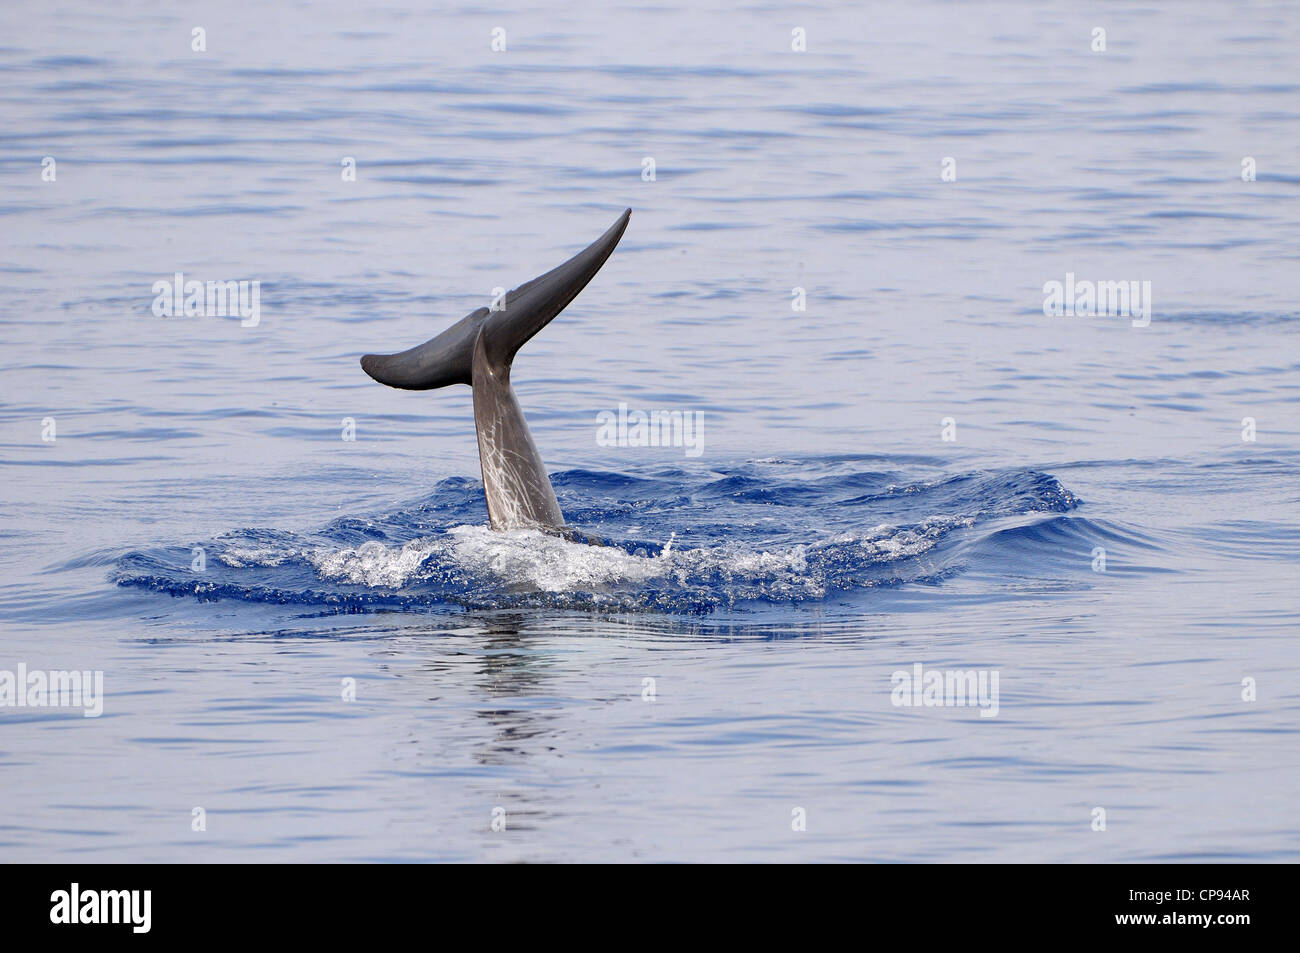 Risso's Dolphin (Grampus griseus) diving, with tail fluke in the air, The Maldives - Stock Image